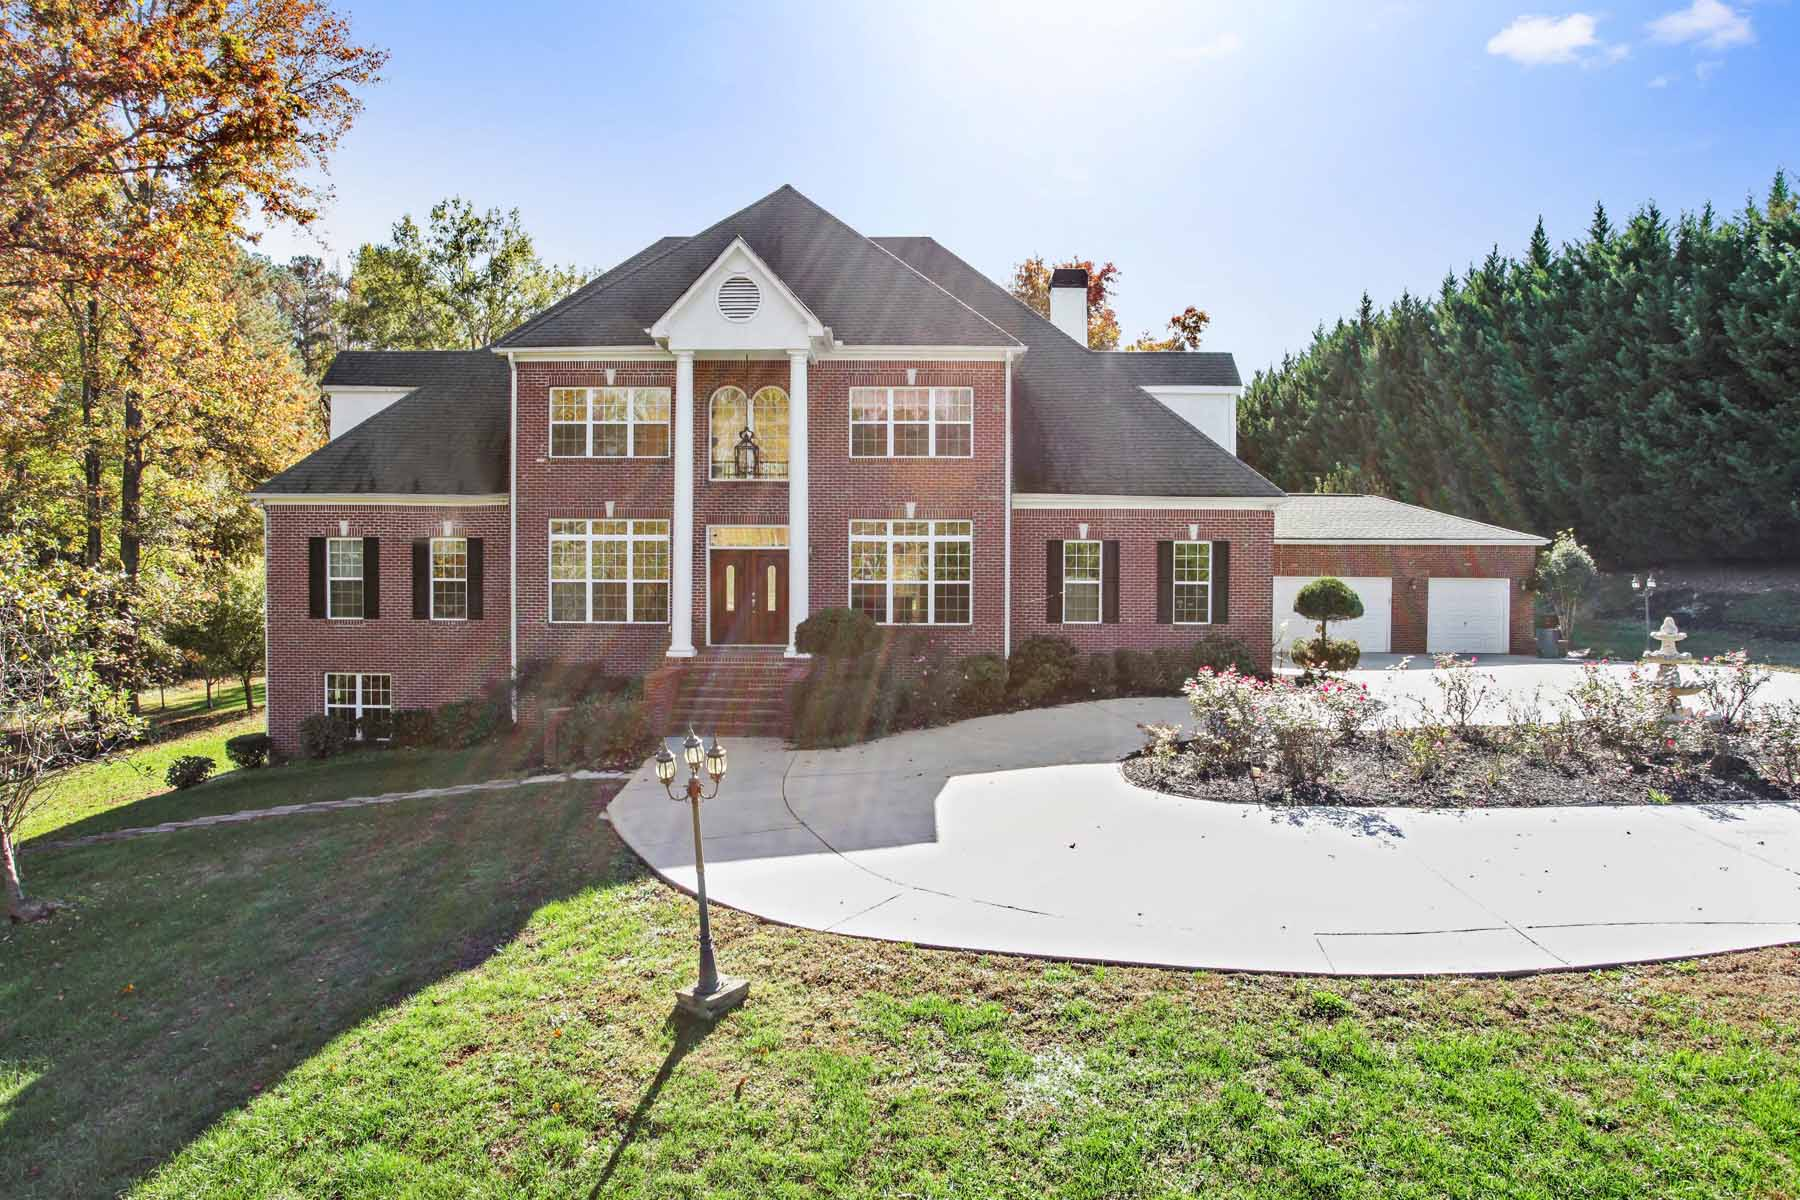 Single Family Home for Sale at Large Roswell Home Has Three Acres 995 Hembree Road, Roswell, Georgia, 30076 United States